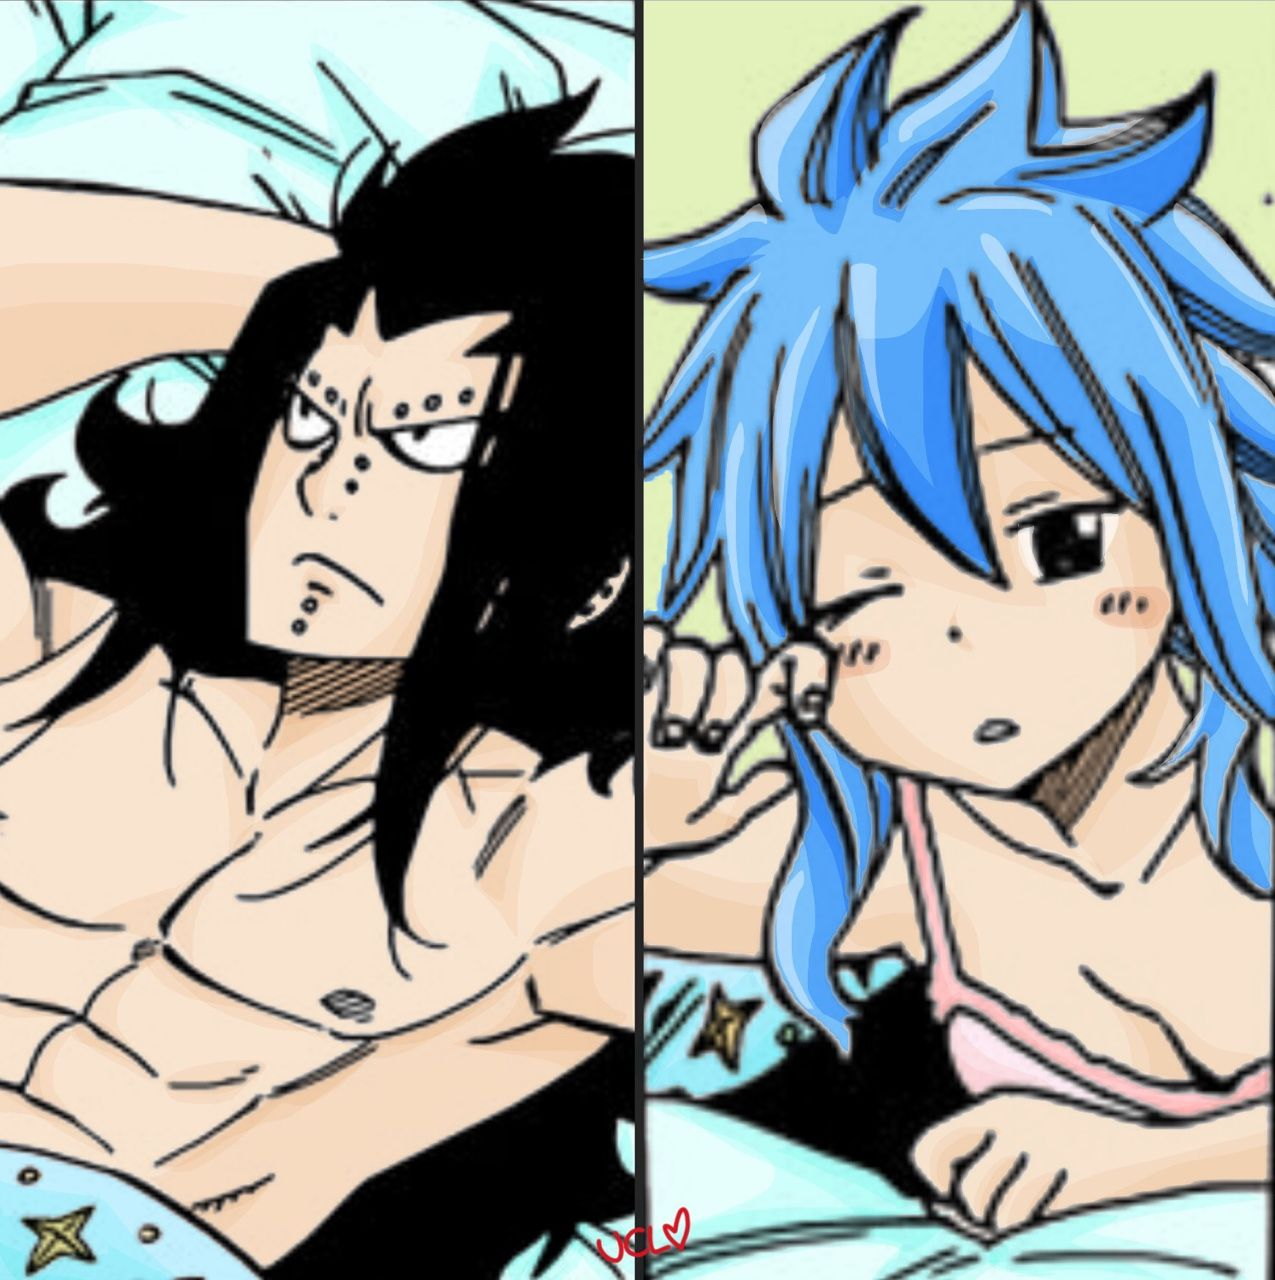 gajeel x levy | Tumblr